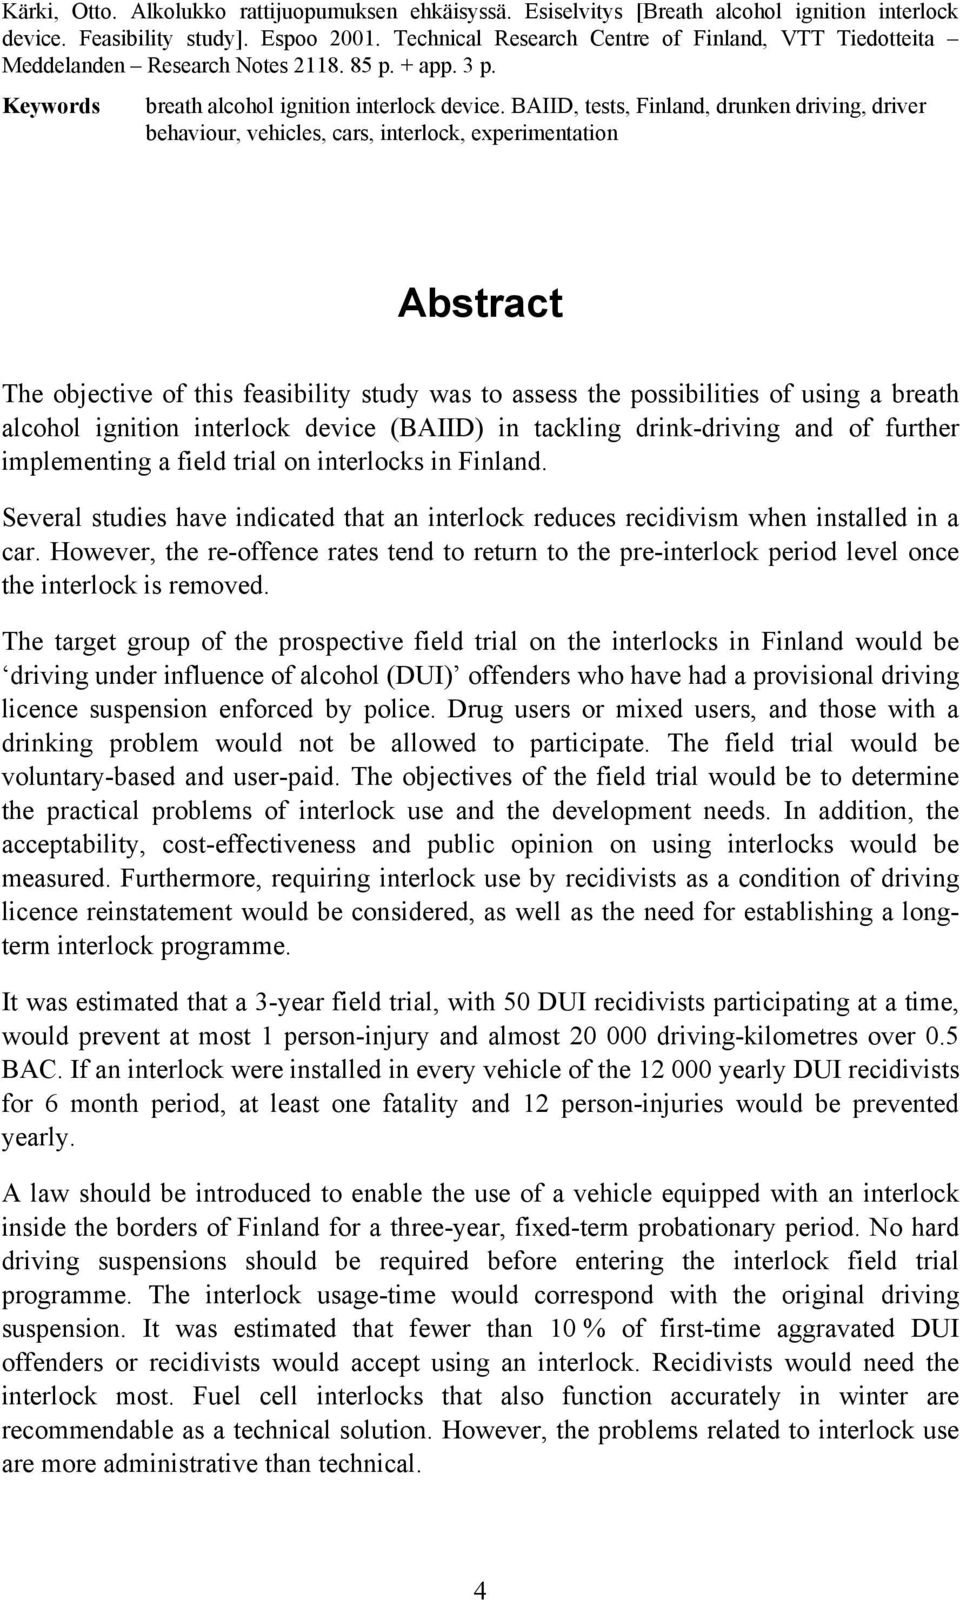 BAIID, tests, Finland, drunken driving, driver behaviour, vehicles, cars, interlock, experimentation Abstract The objective of this feasibility study was to assess the possibilities of using a breath